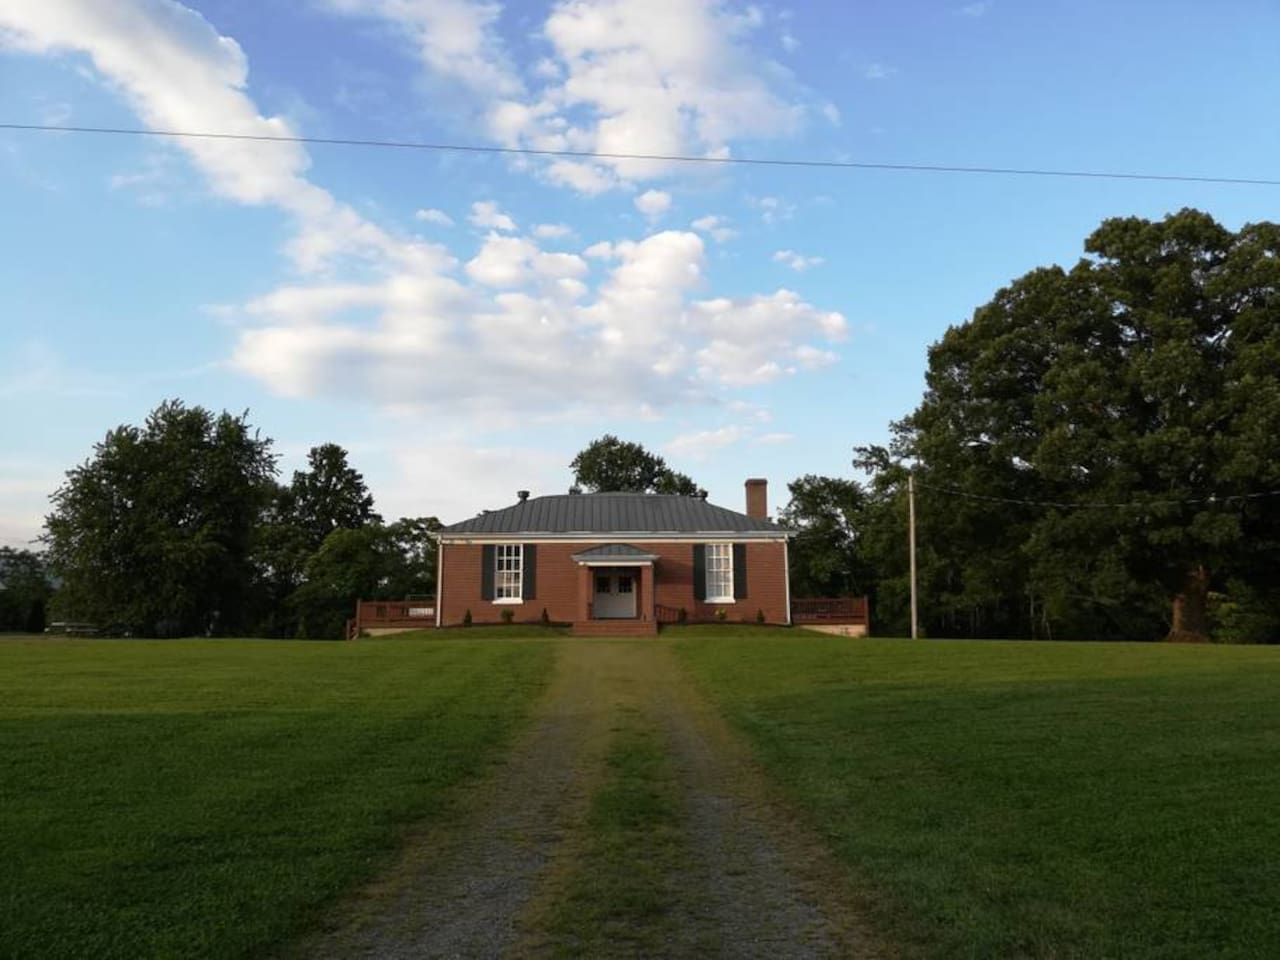 The historic Dyke Schoolhouse. This listing includes the entire residence which consists of two modern independent living units.